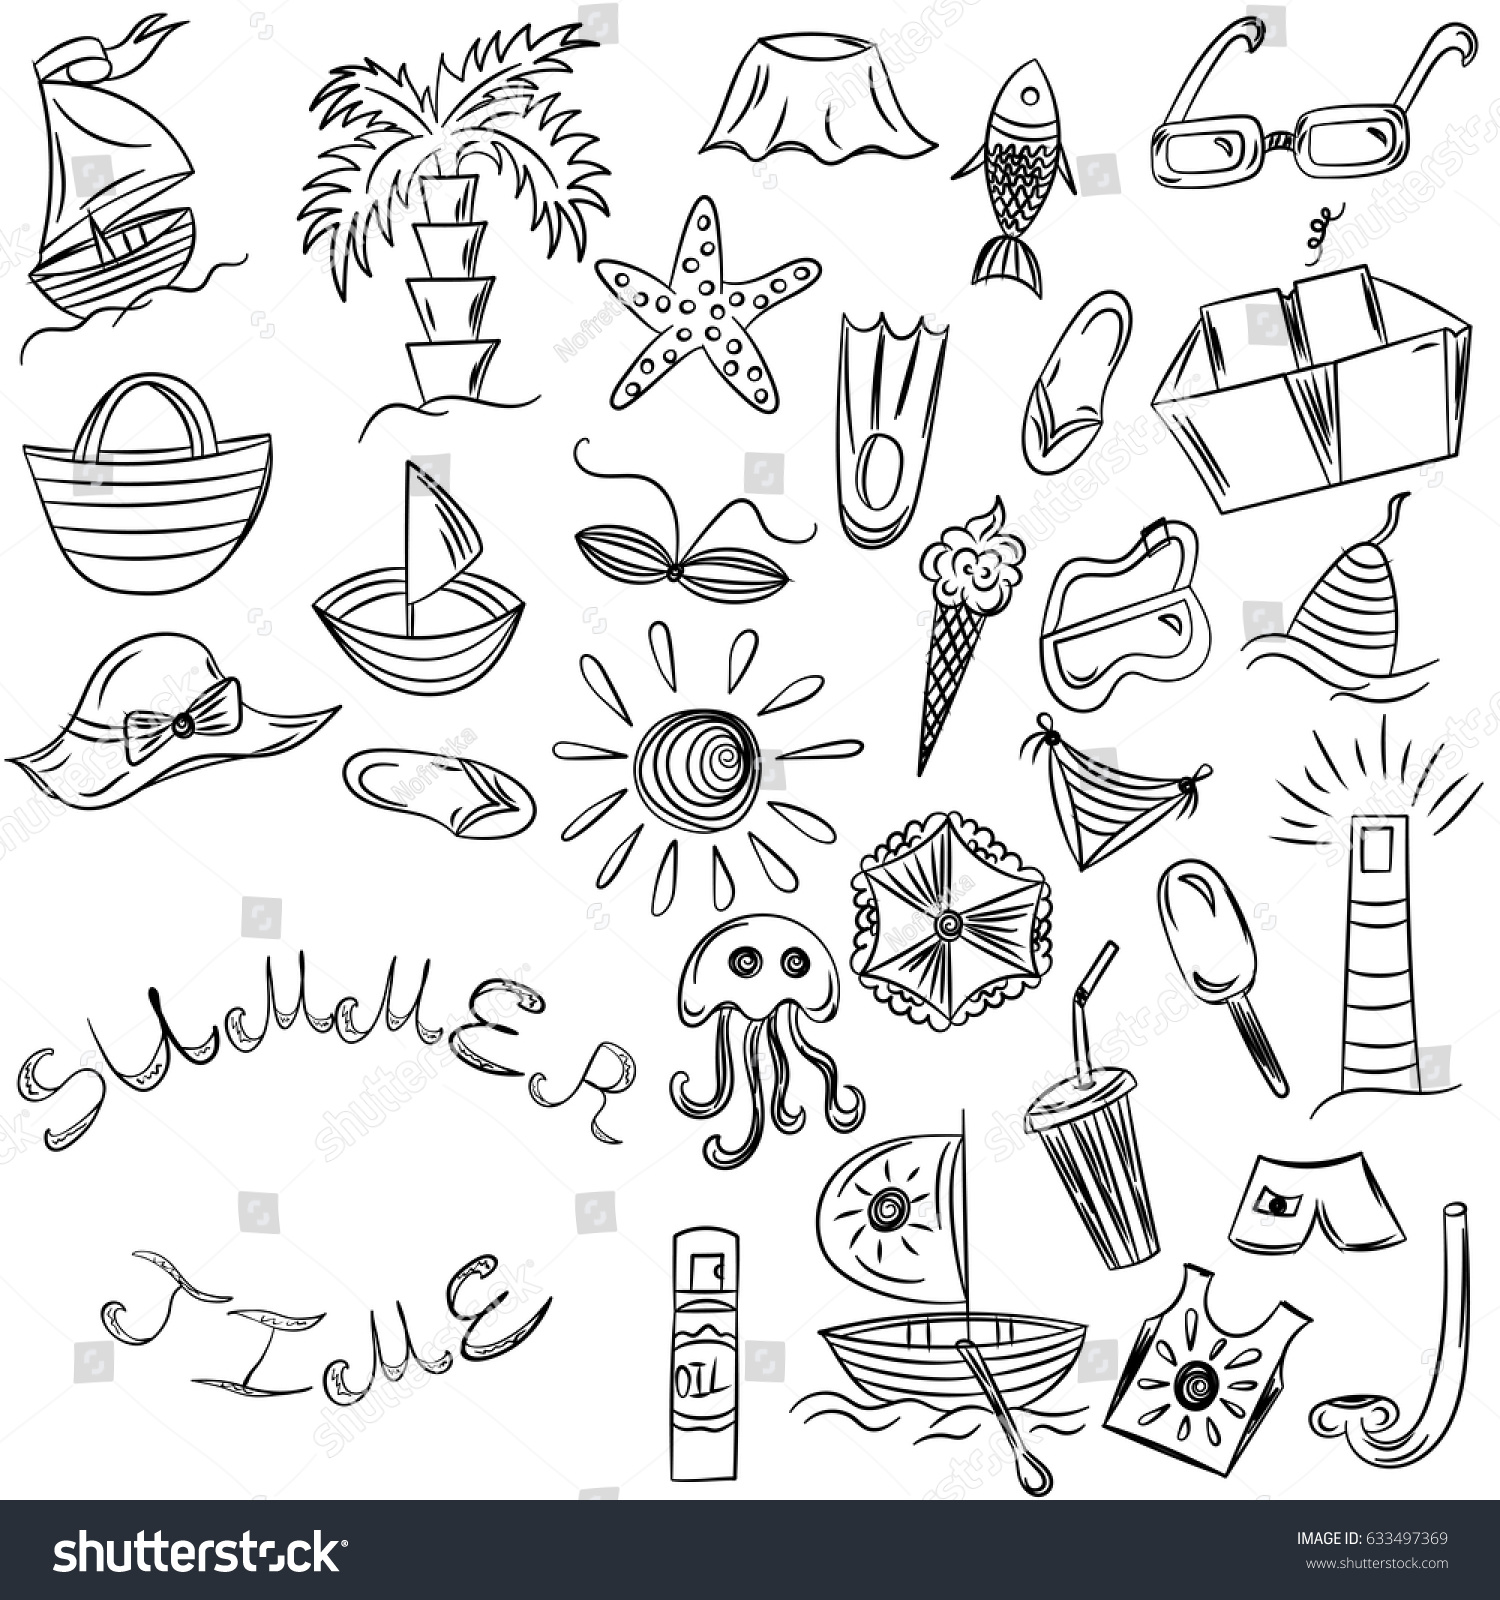 Uncategorized Drawings Of Summer summer time hand drawings vacancies stock vector 633497369 of symbols doodle boats ice cream